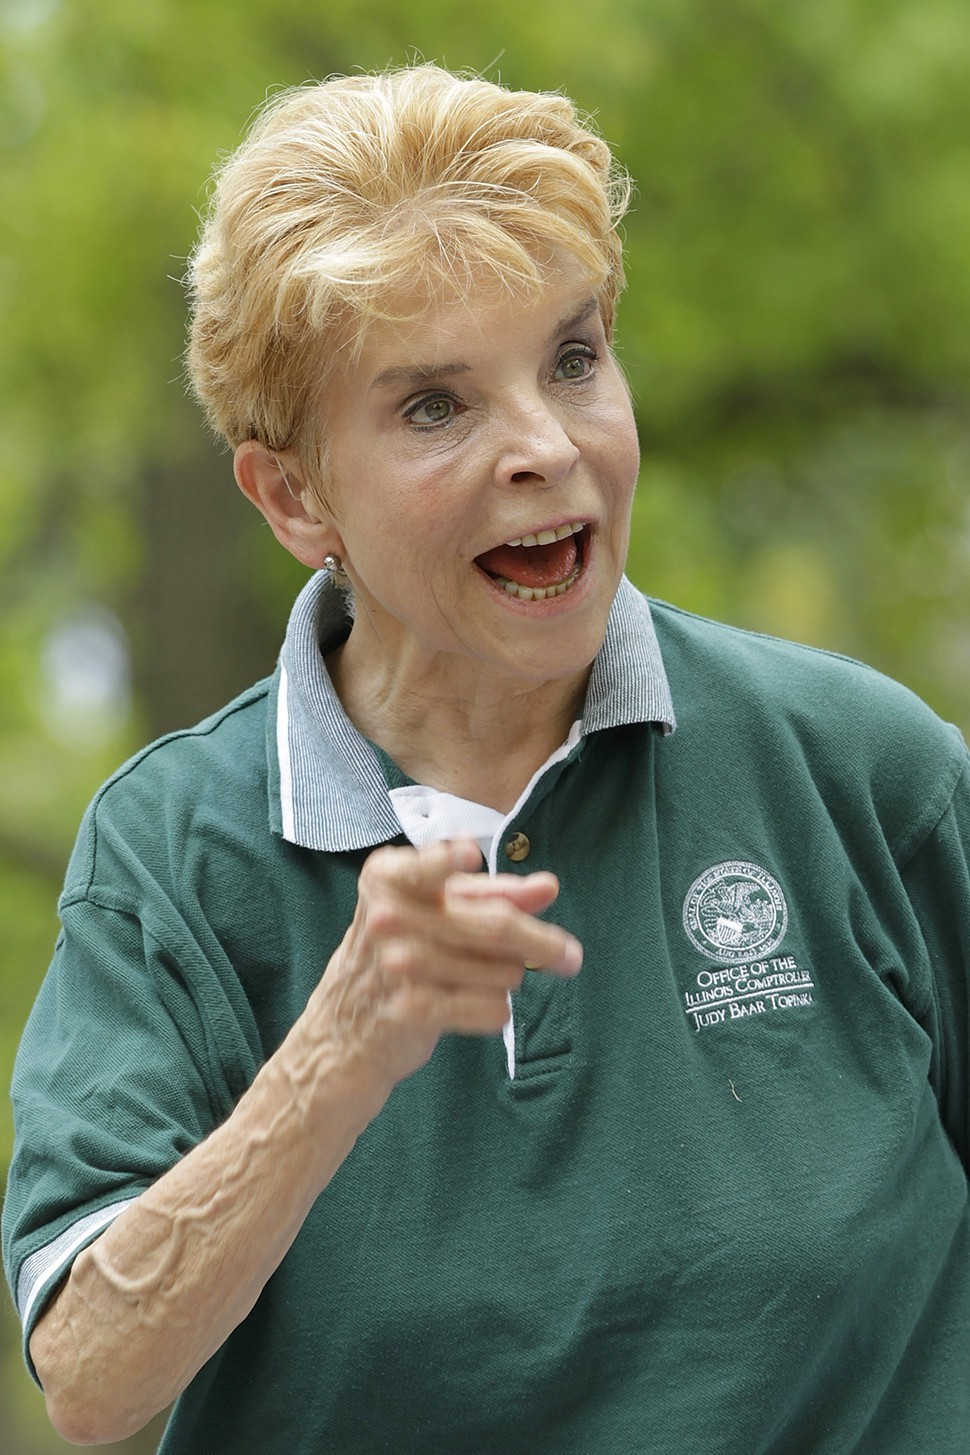 Illinois comptroller Judy Baar Topinka: saying whatever the hell she wants